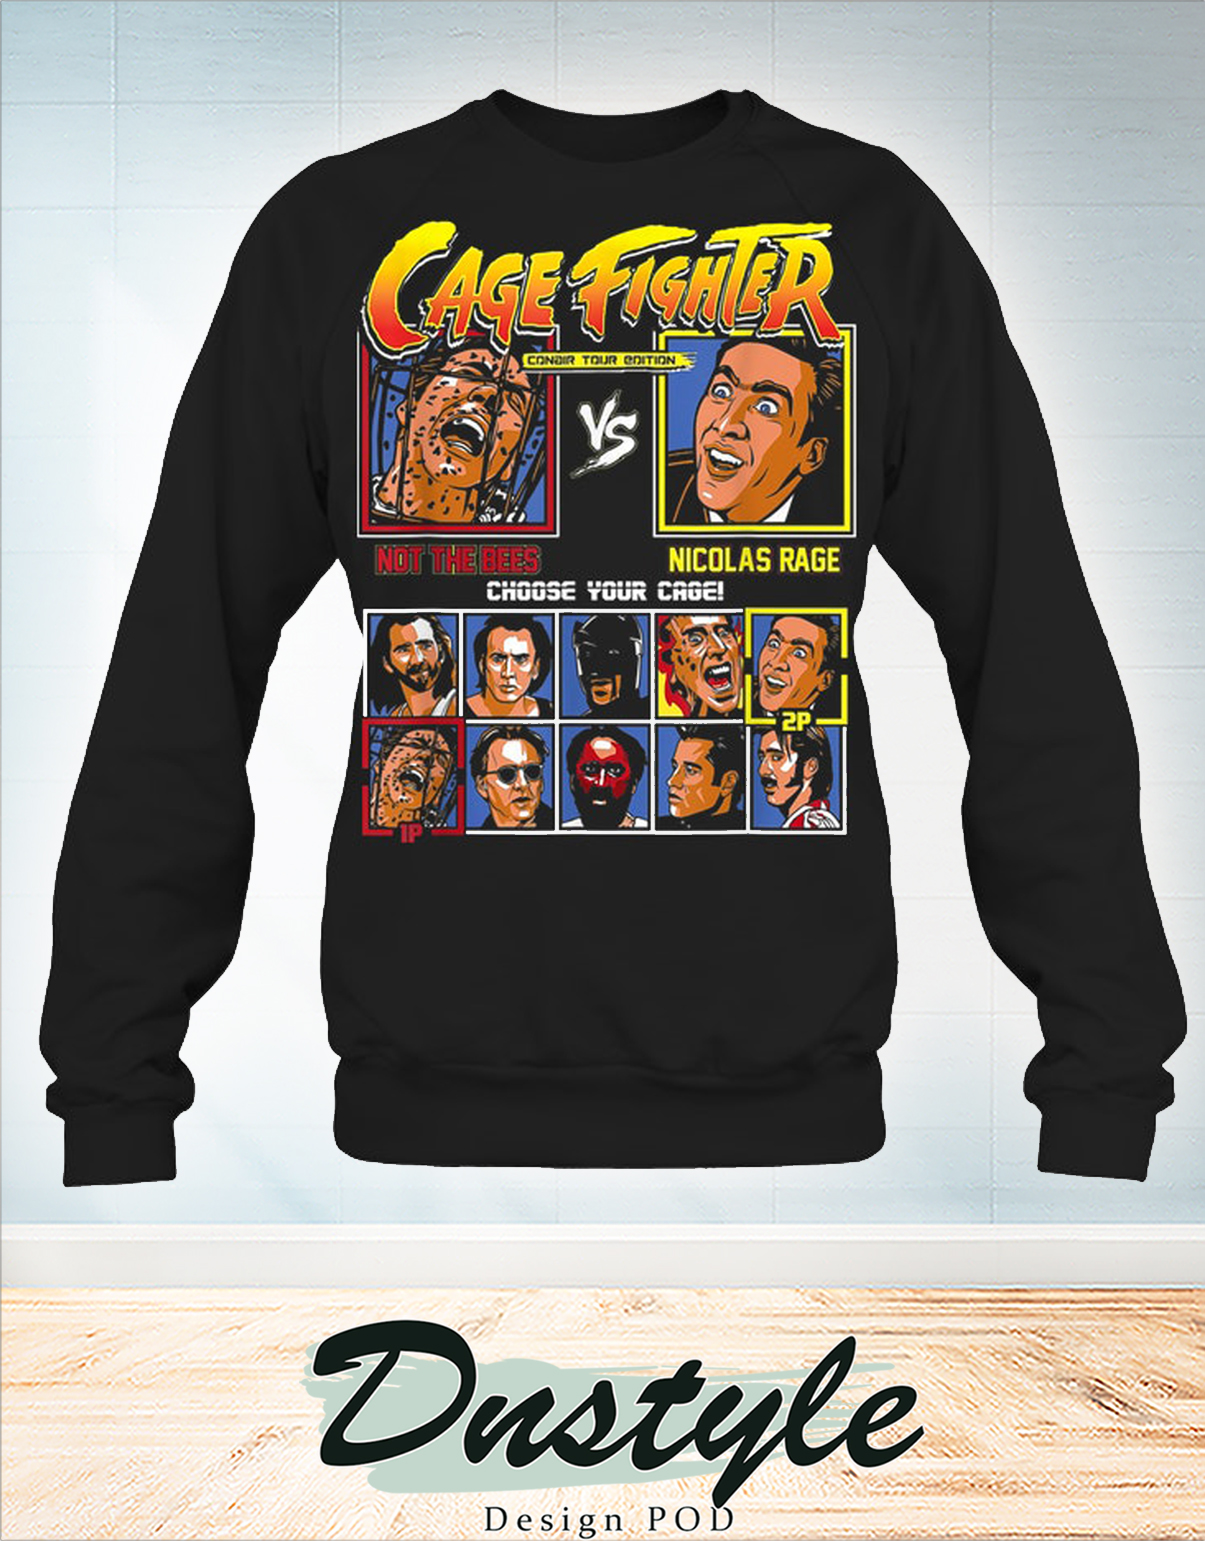 Cage fighter not the bees vs nicolas rage long sleeve